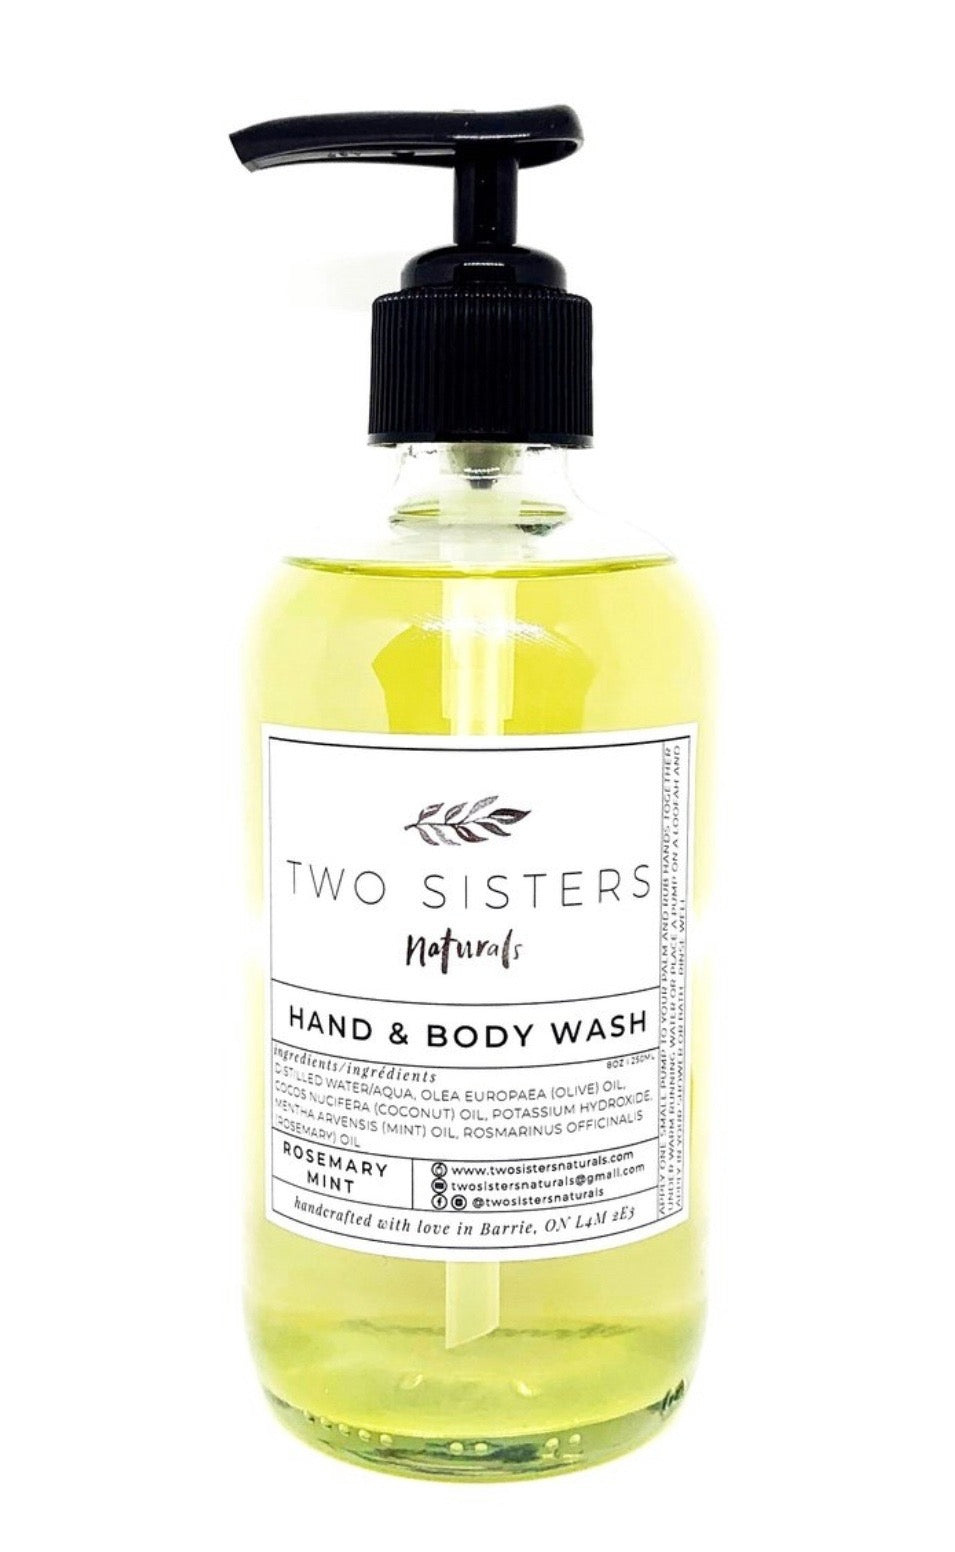 Two Sisters Rosemary Mint Hand Wash!